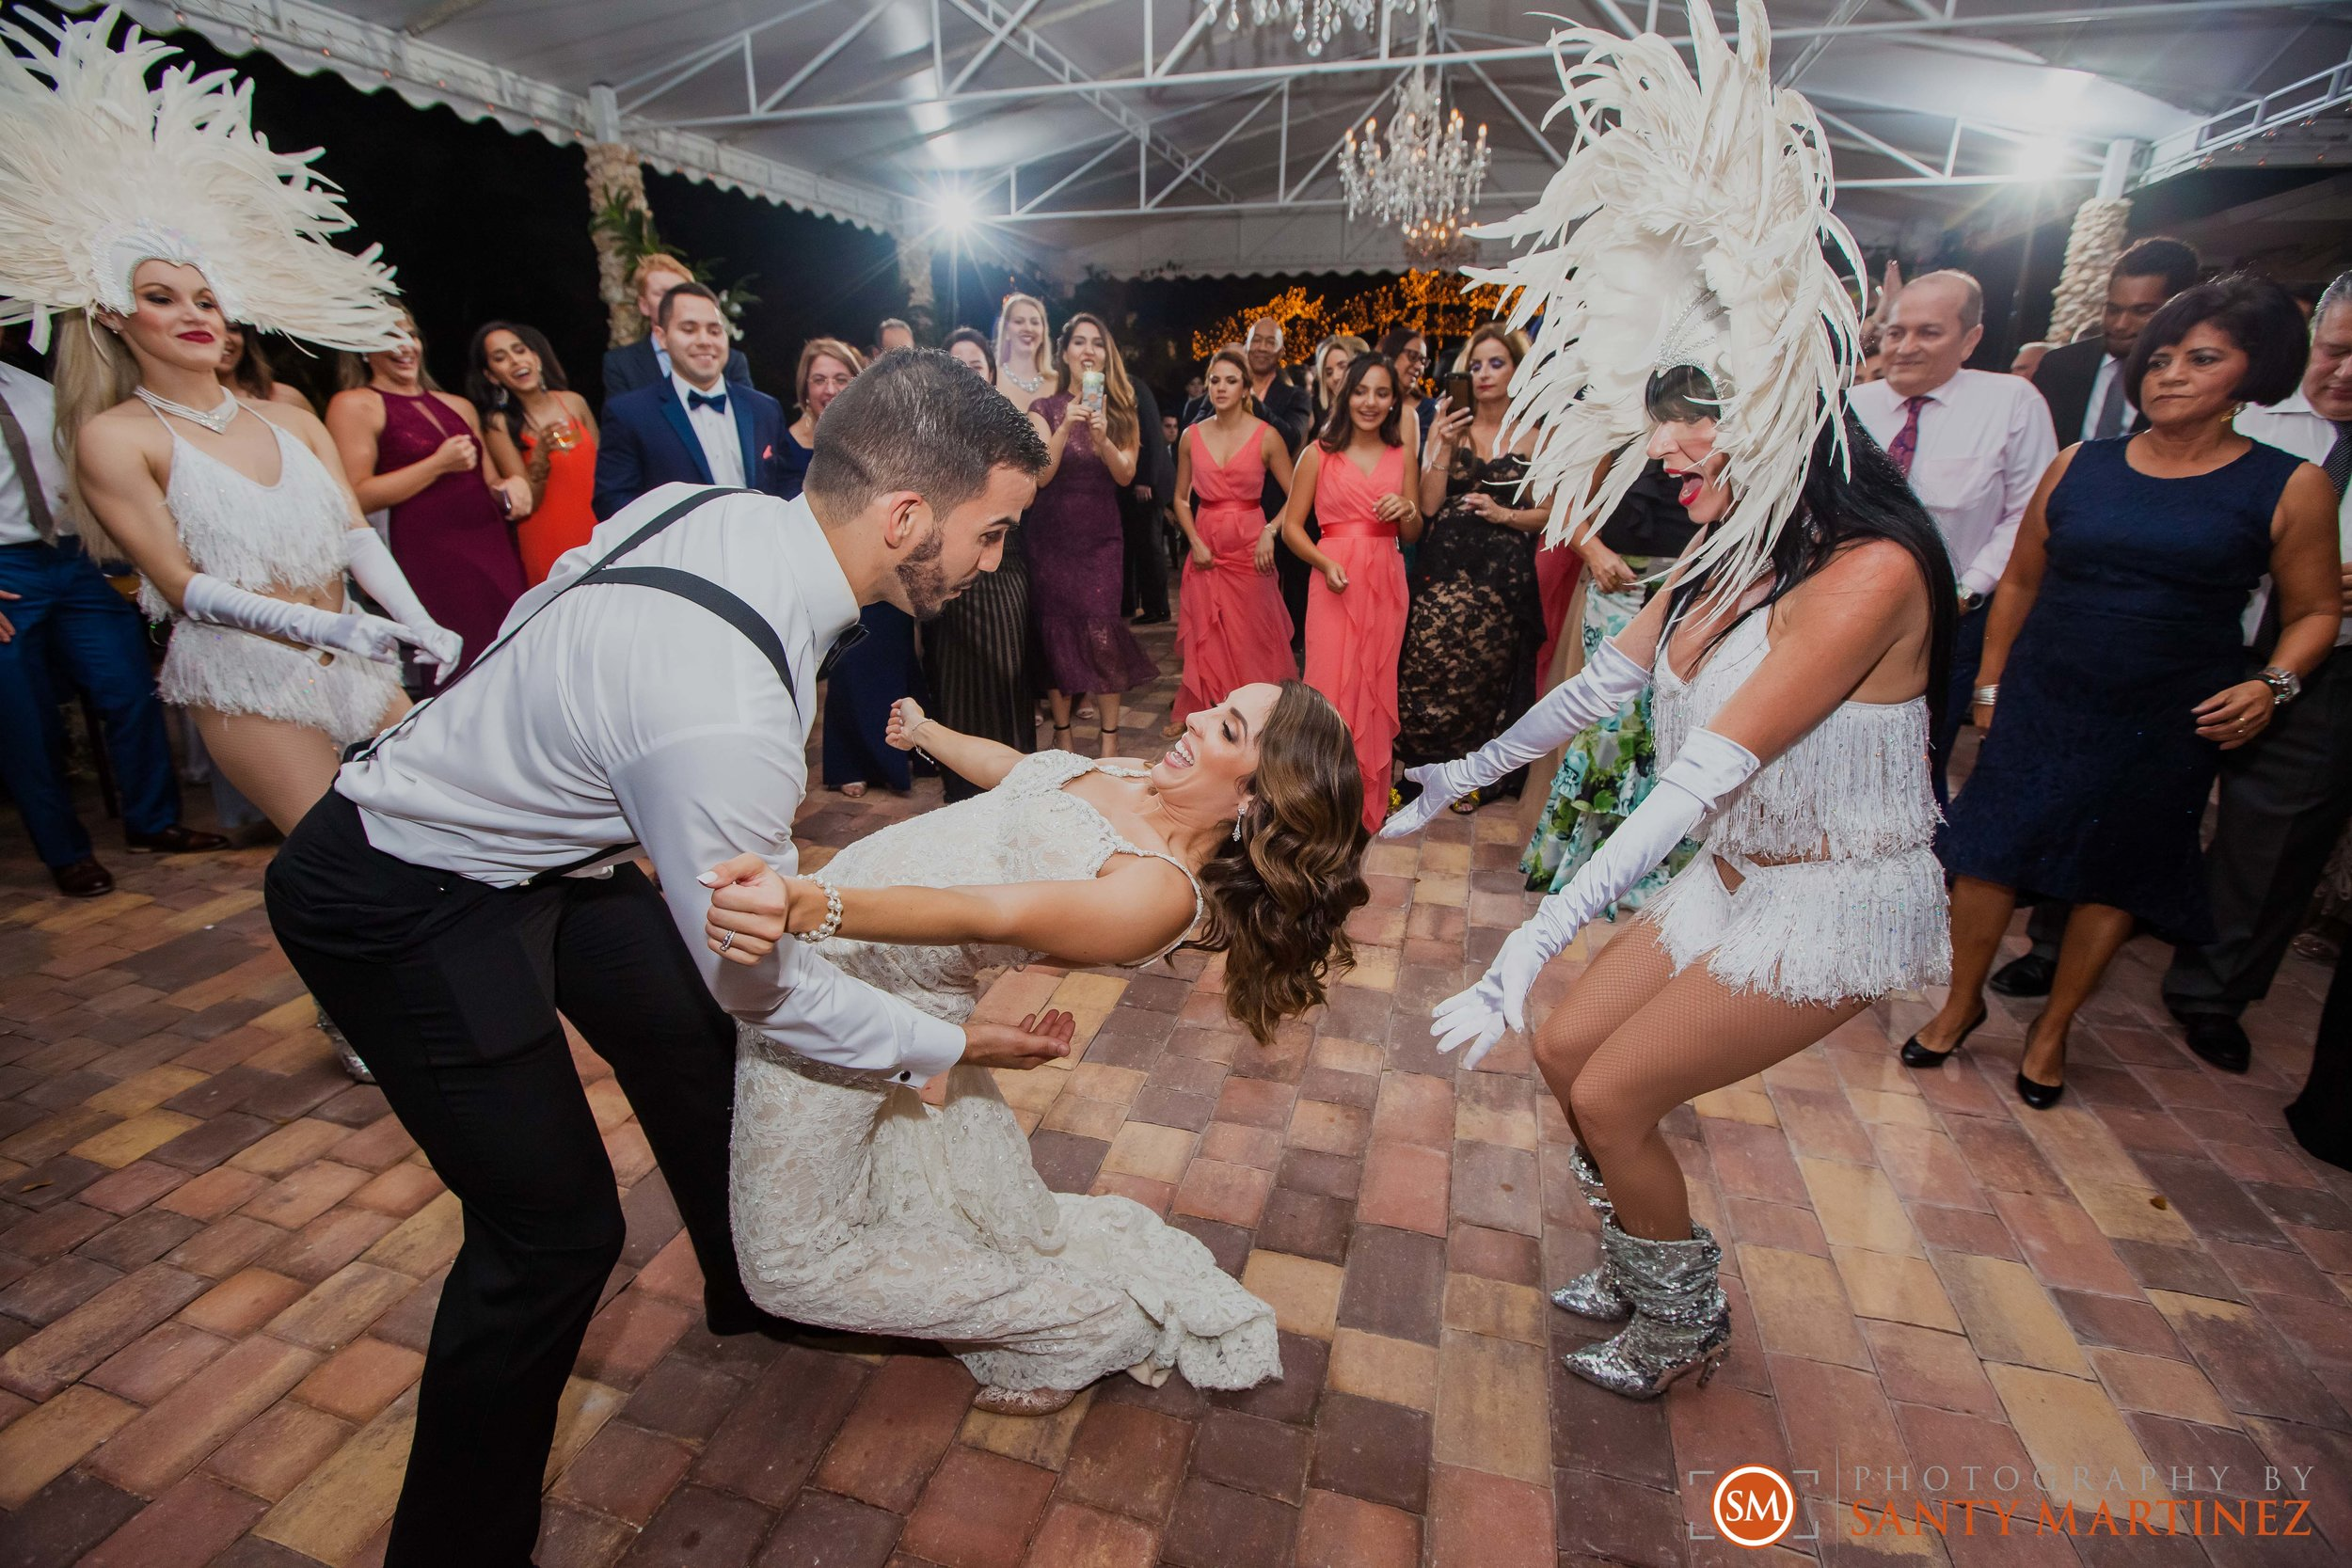 Wedding+at+the+The+Miller+Plantation+-+Santy+Martinez-51.jpg